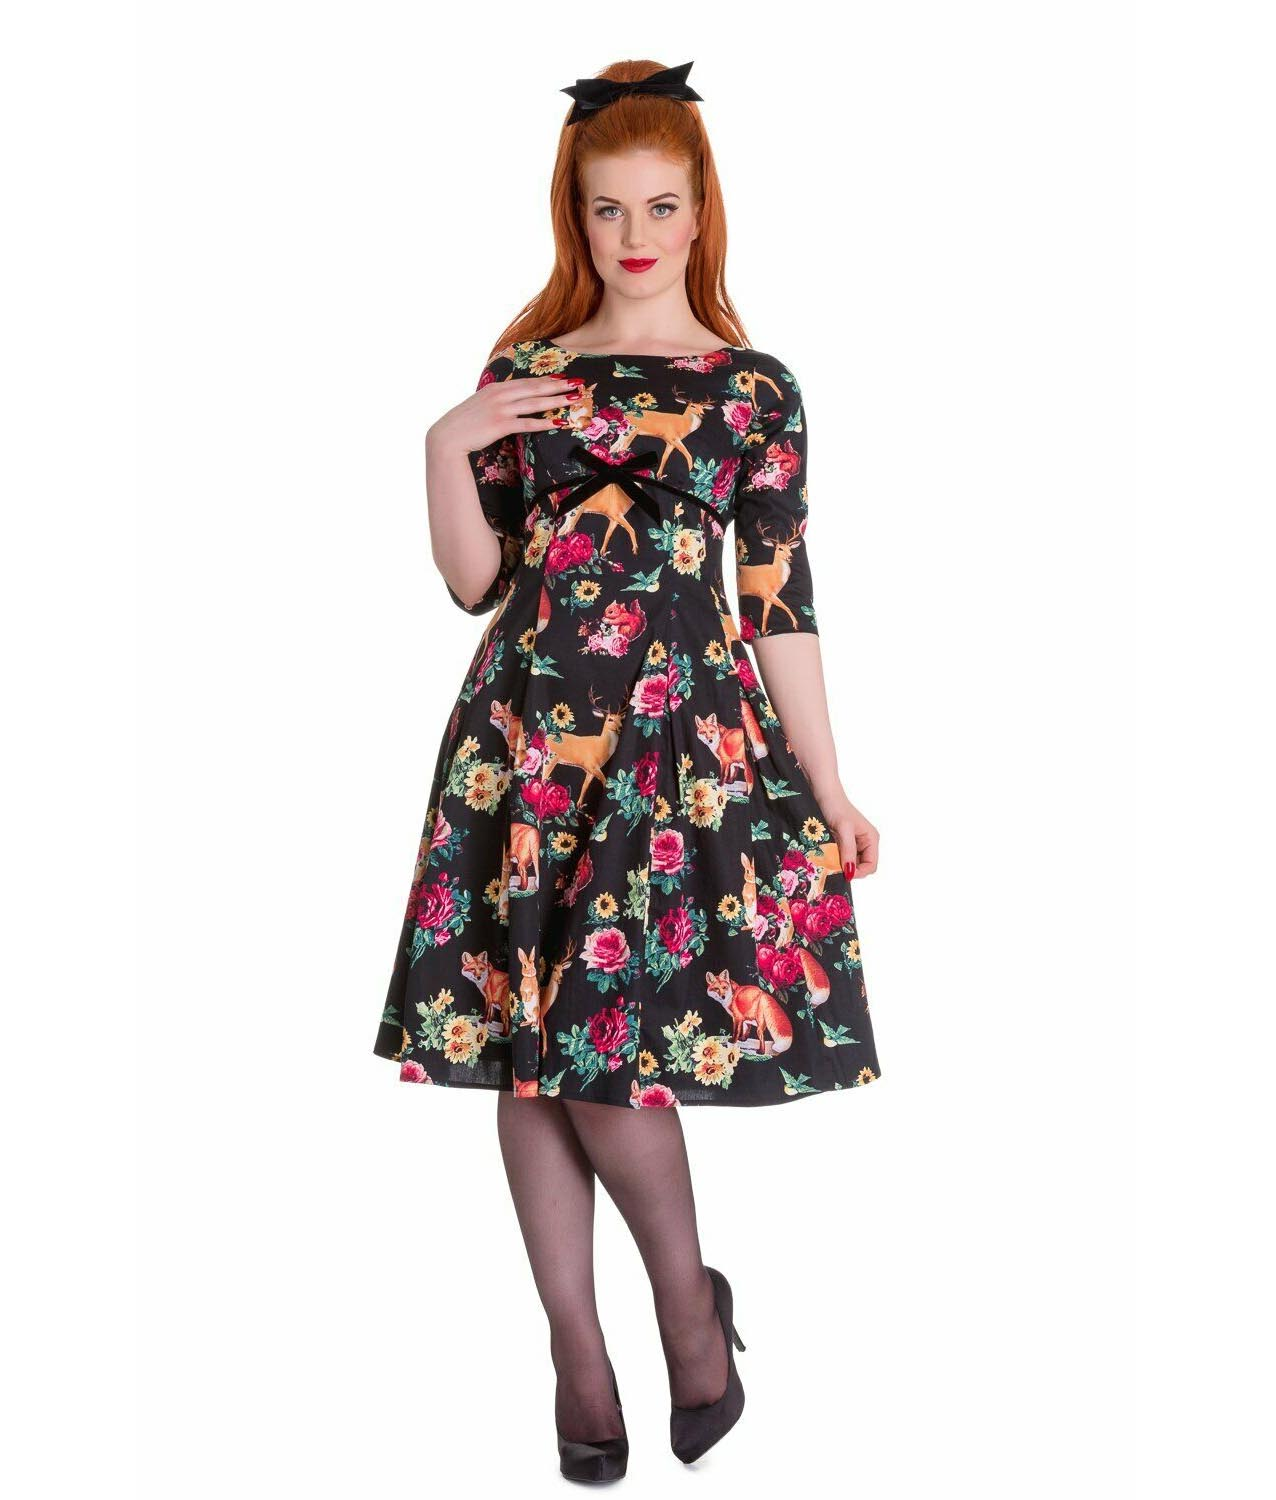 Hell-Bunny-40s-50s-Pin-Up-Vintage-Dress-HERMELINE-Woodland-Fox-All-Sizes thumbnail 11